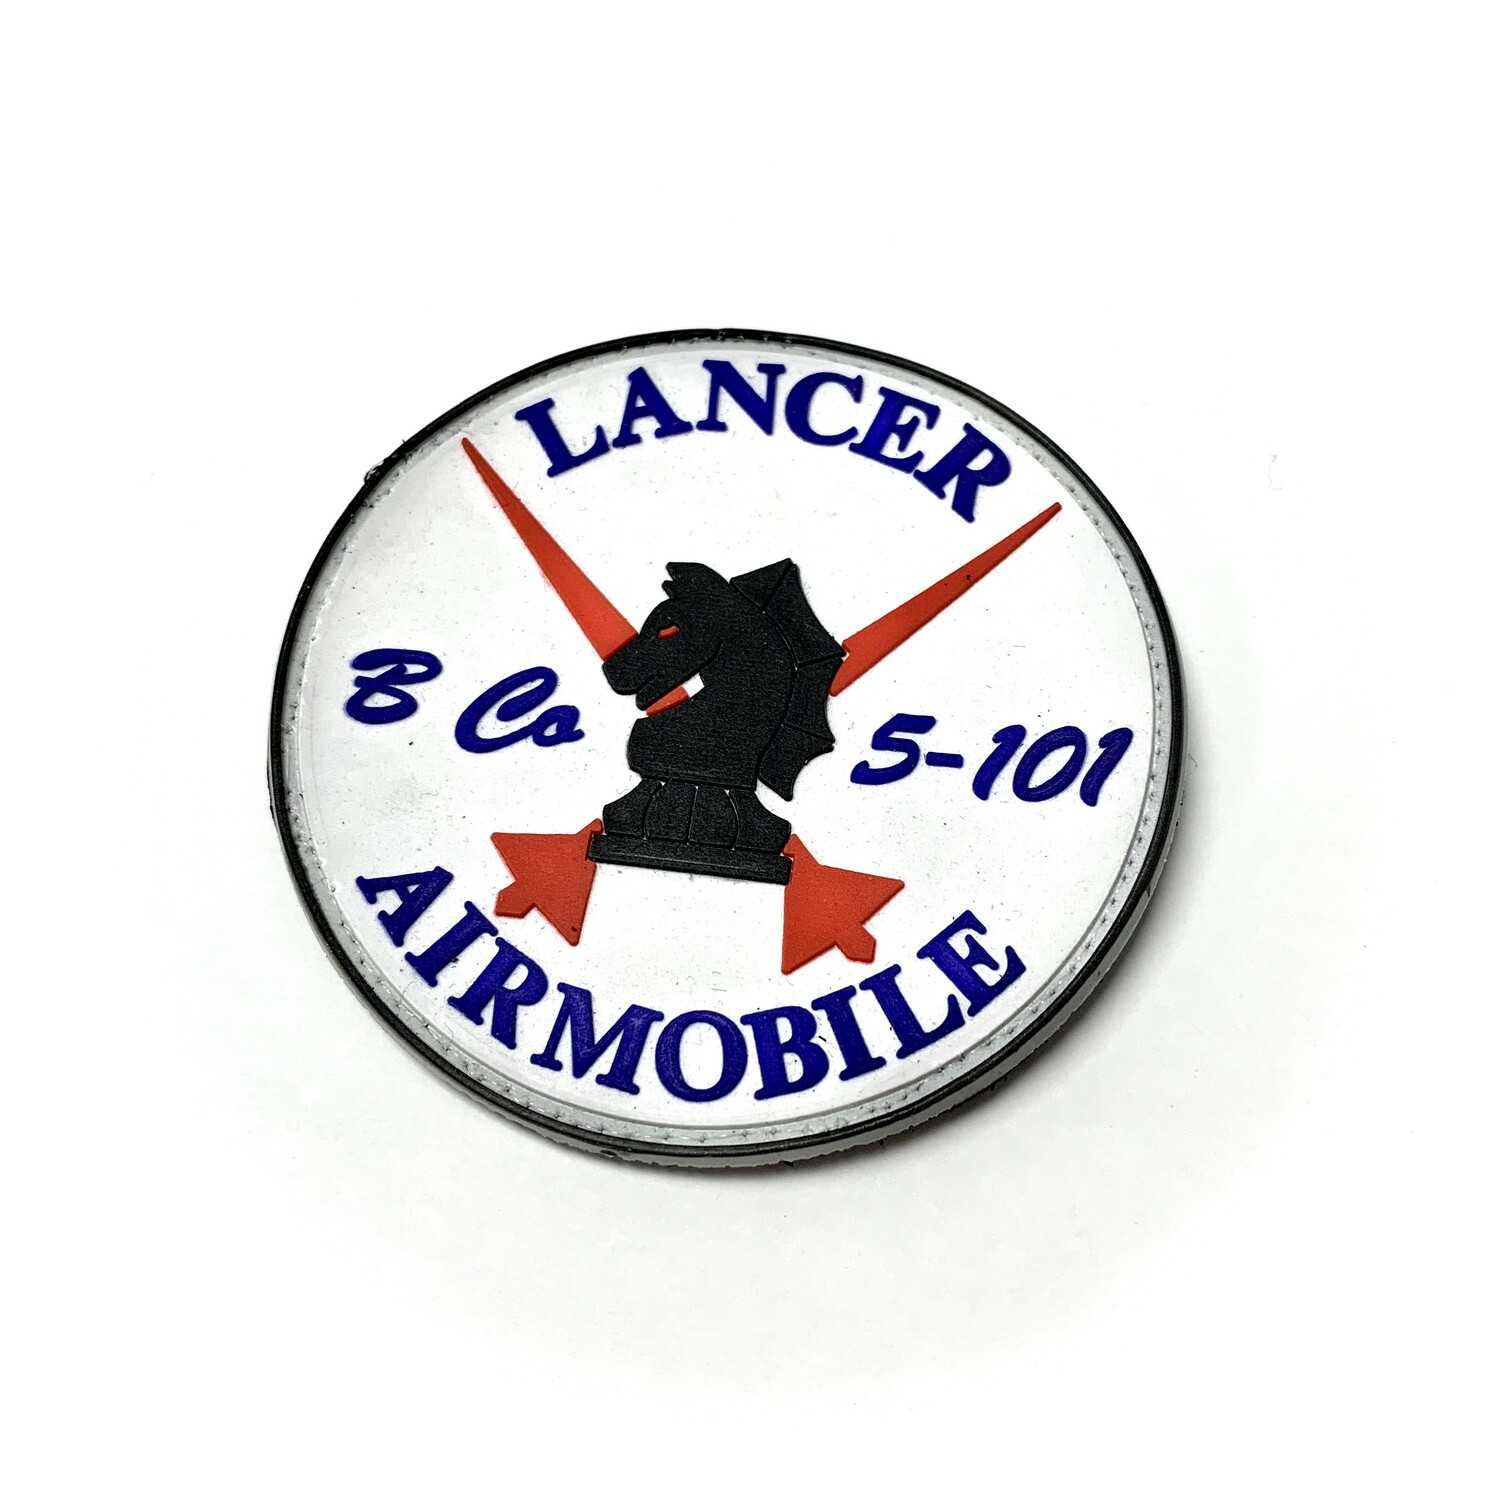 "B Co 5-101 ""Lancer"" Patch (PVC Rubber)"